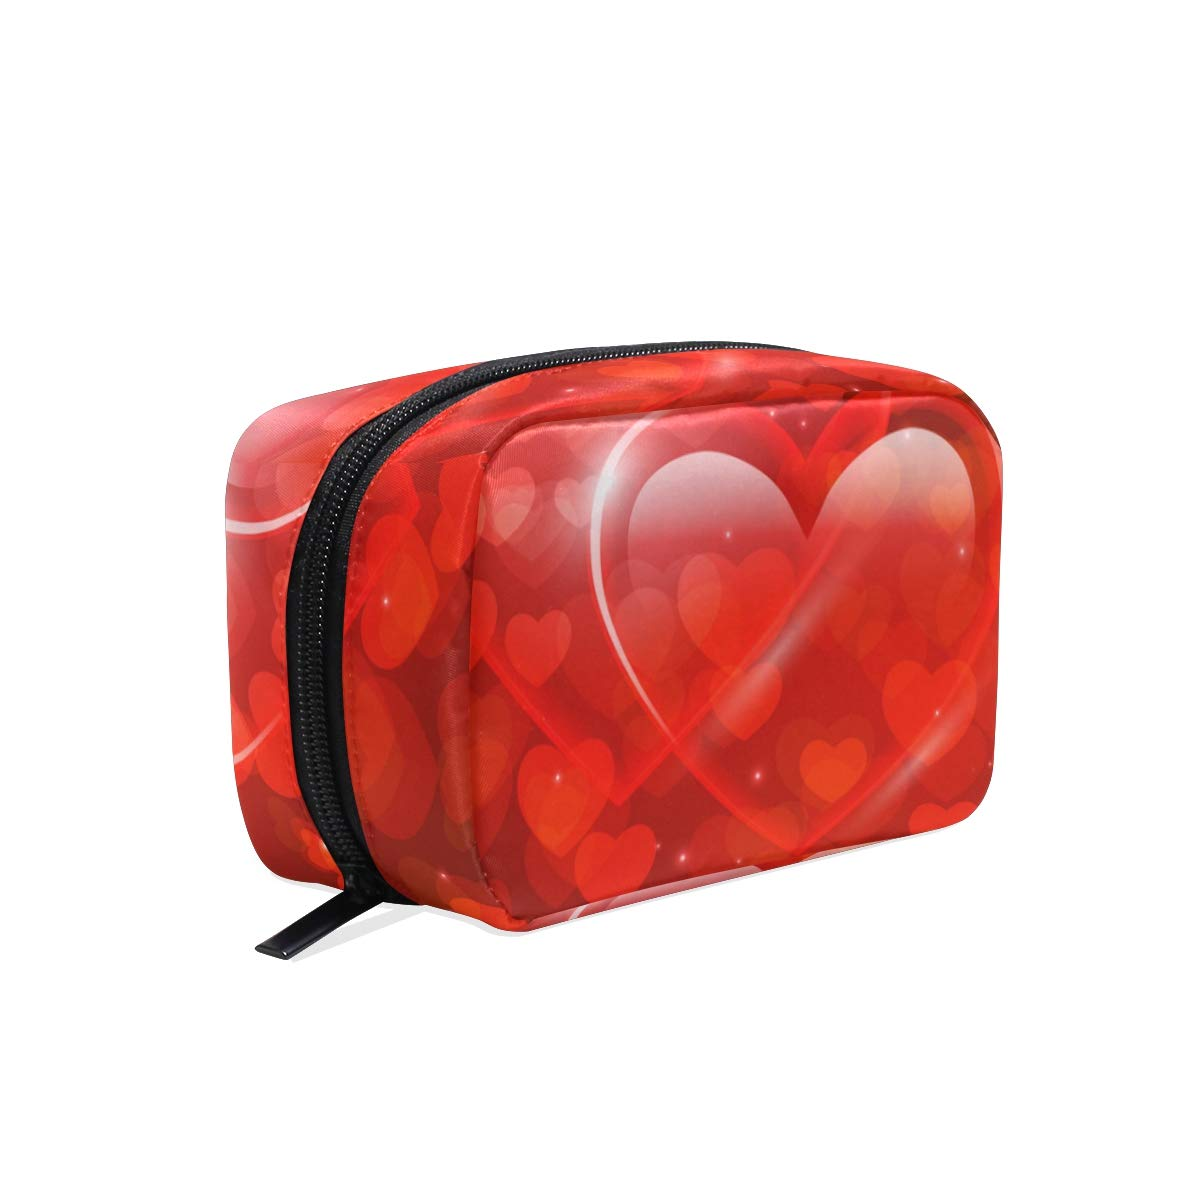 Cosmetic Makeup Bag Pouch Valentines Glitter Love Heart Clutch